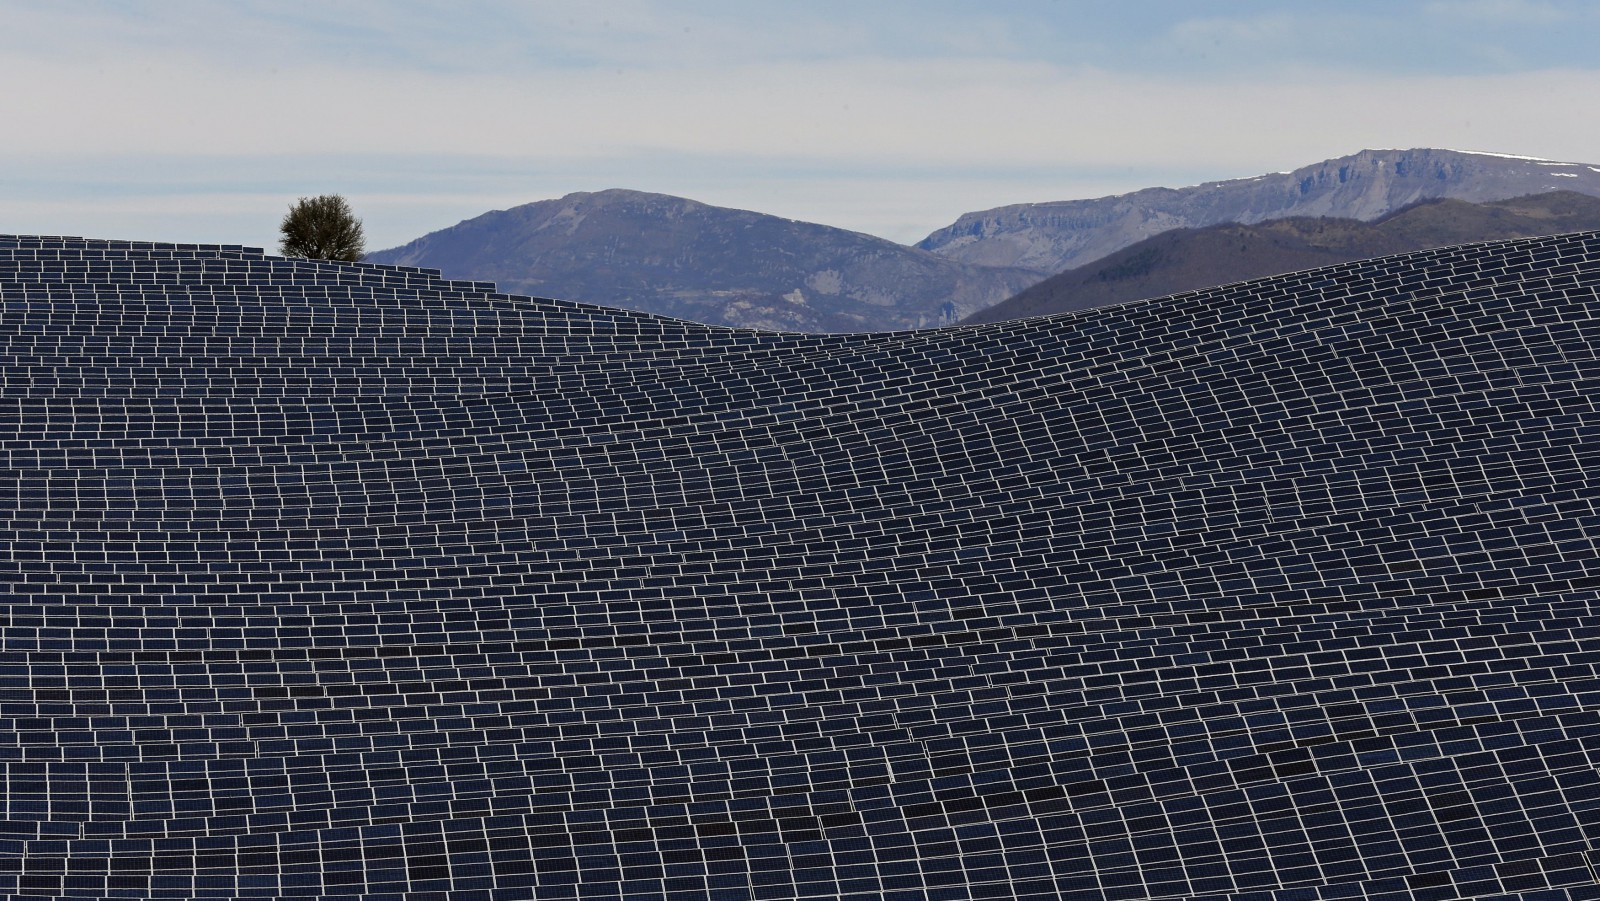 What Saudi Arabia's 200 GW solar power plant would look like from